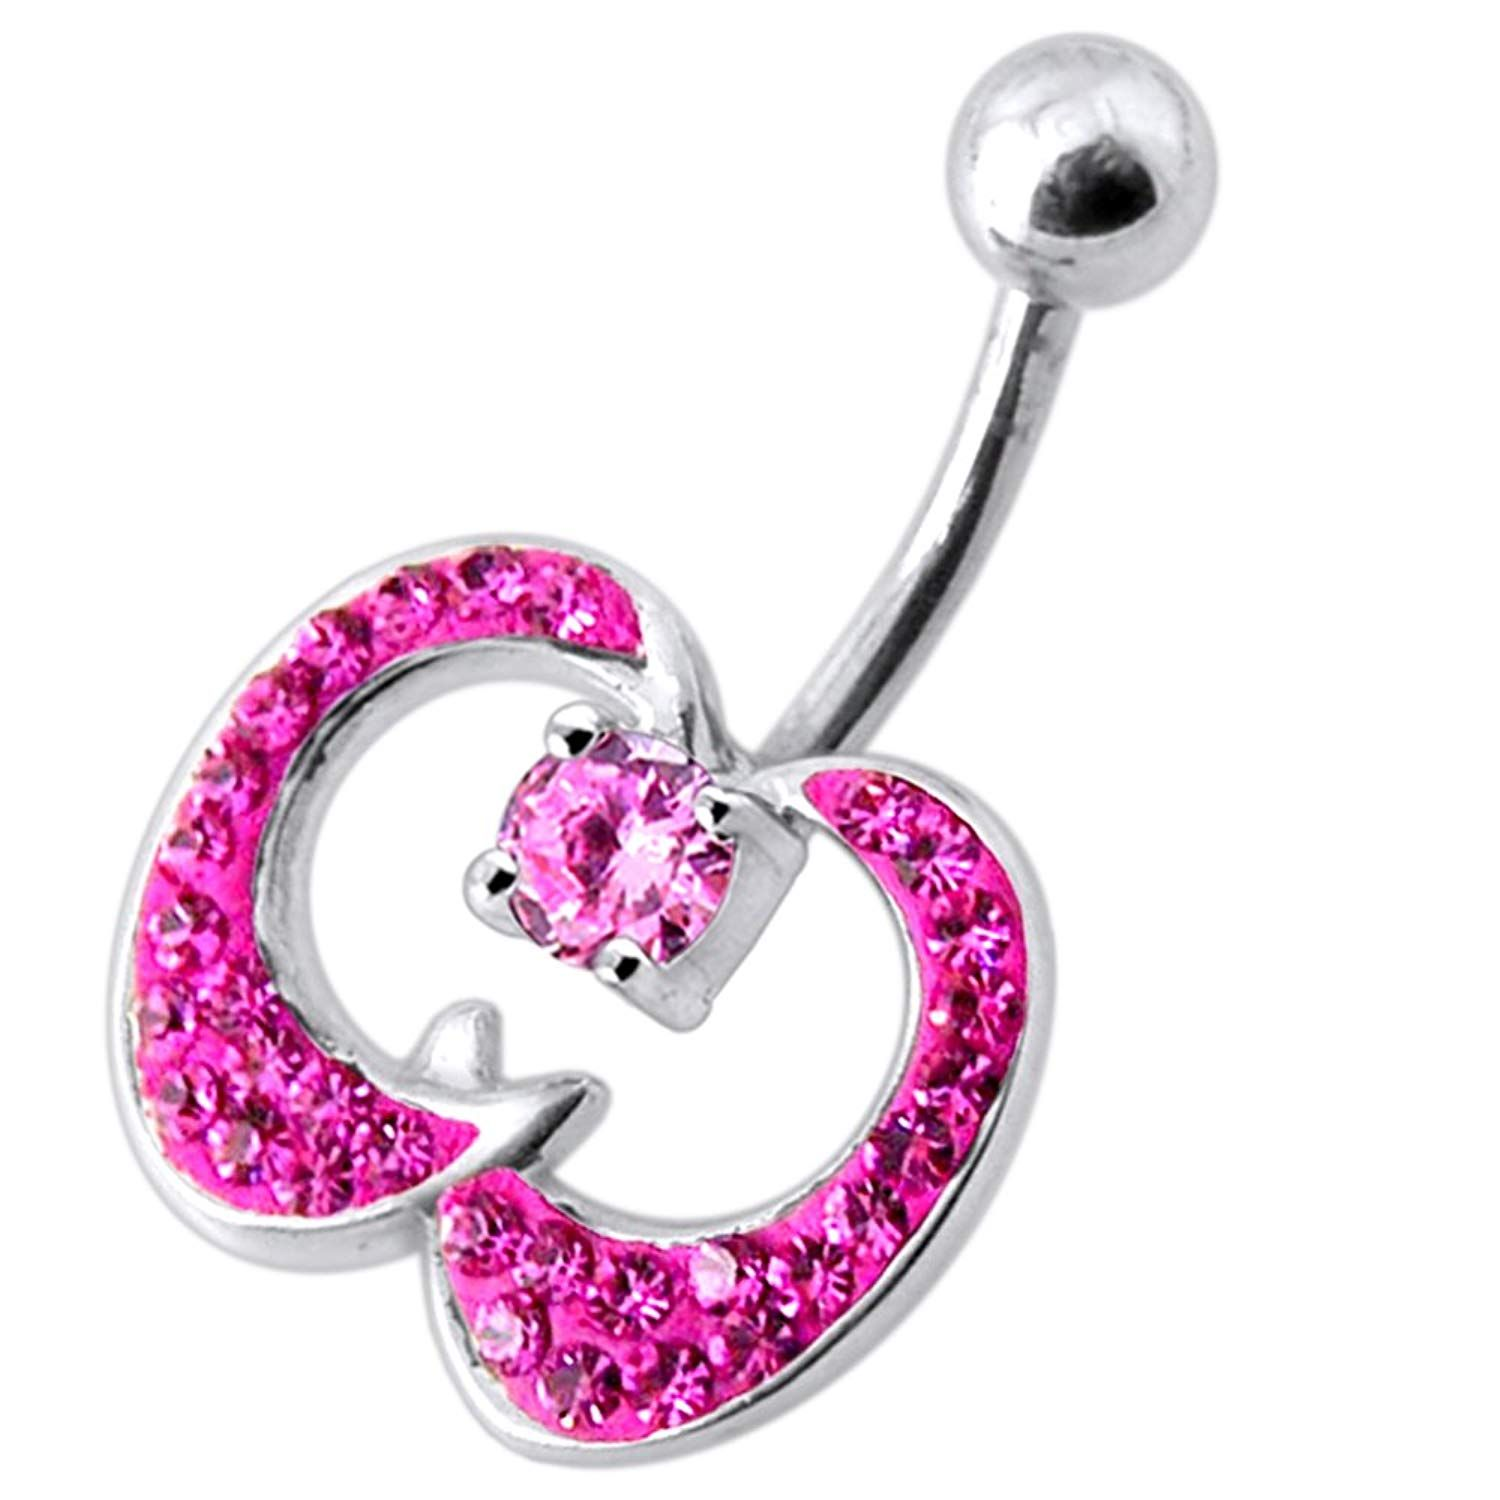 Nose piercing gun kit  Jeweled Fancy Apple Shape Multi Crystals Silver Belly Ring Body